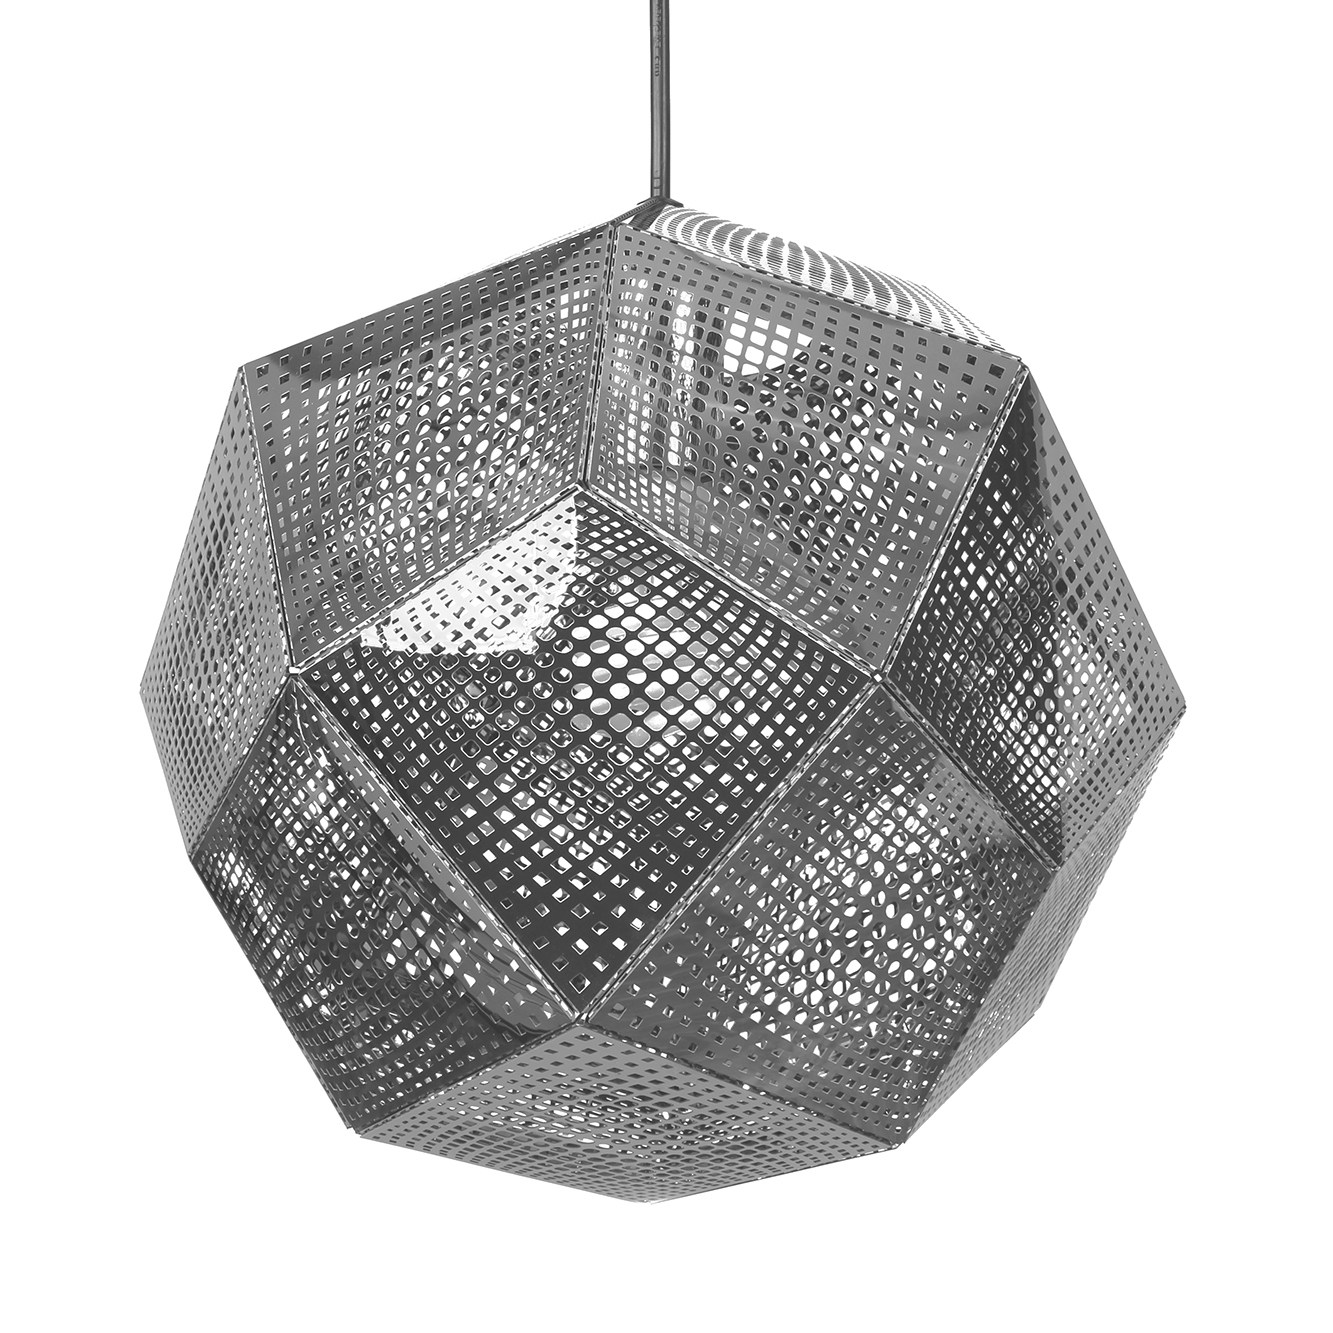 mid-century_modern_reproduction_etch_shade_stainless_steel_pendant_-_chrome_inspired_by_tom_dixon.jpeg